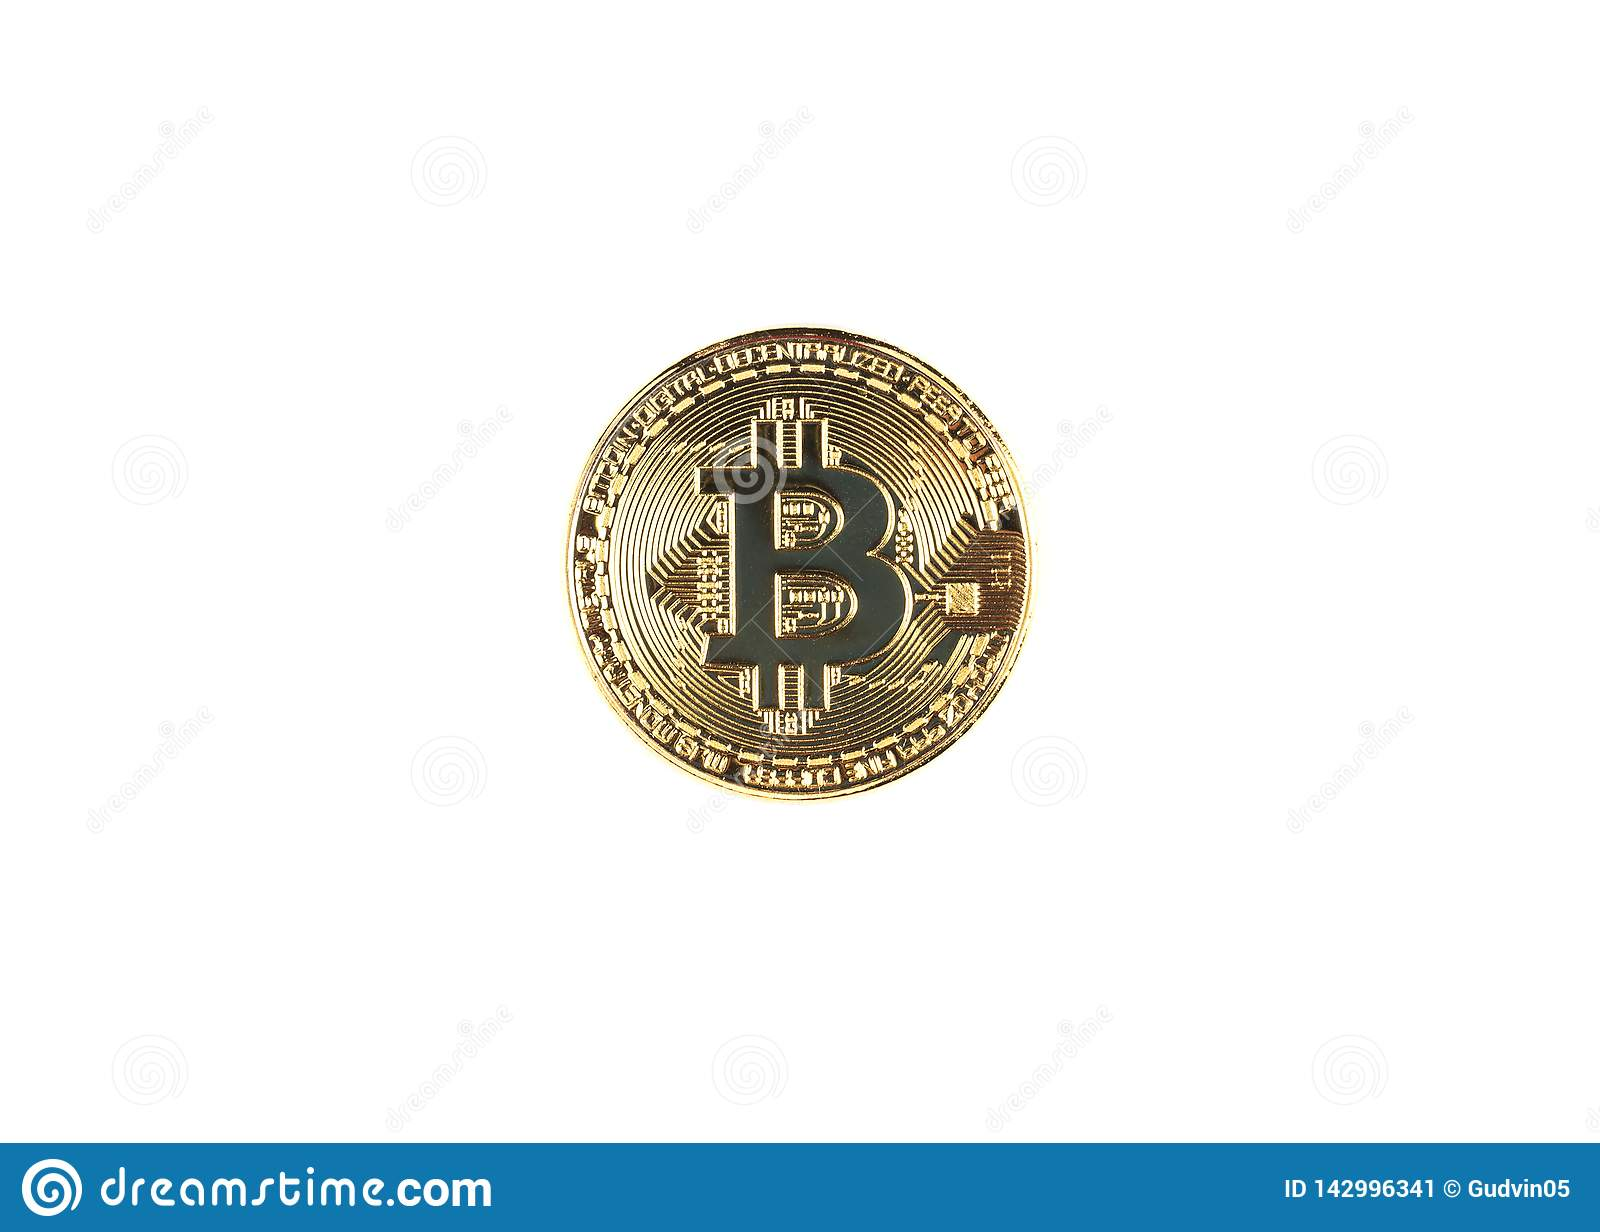 Golden bitcoin oisolated on white background.